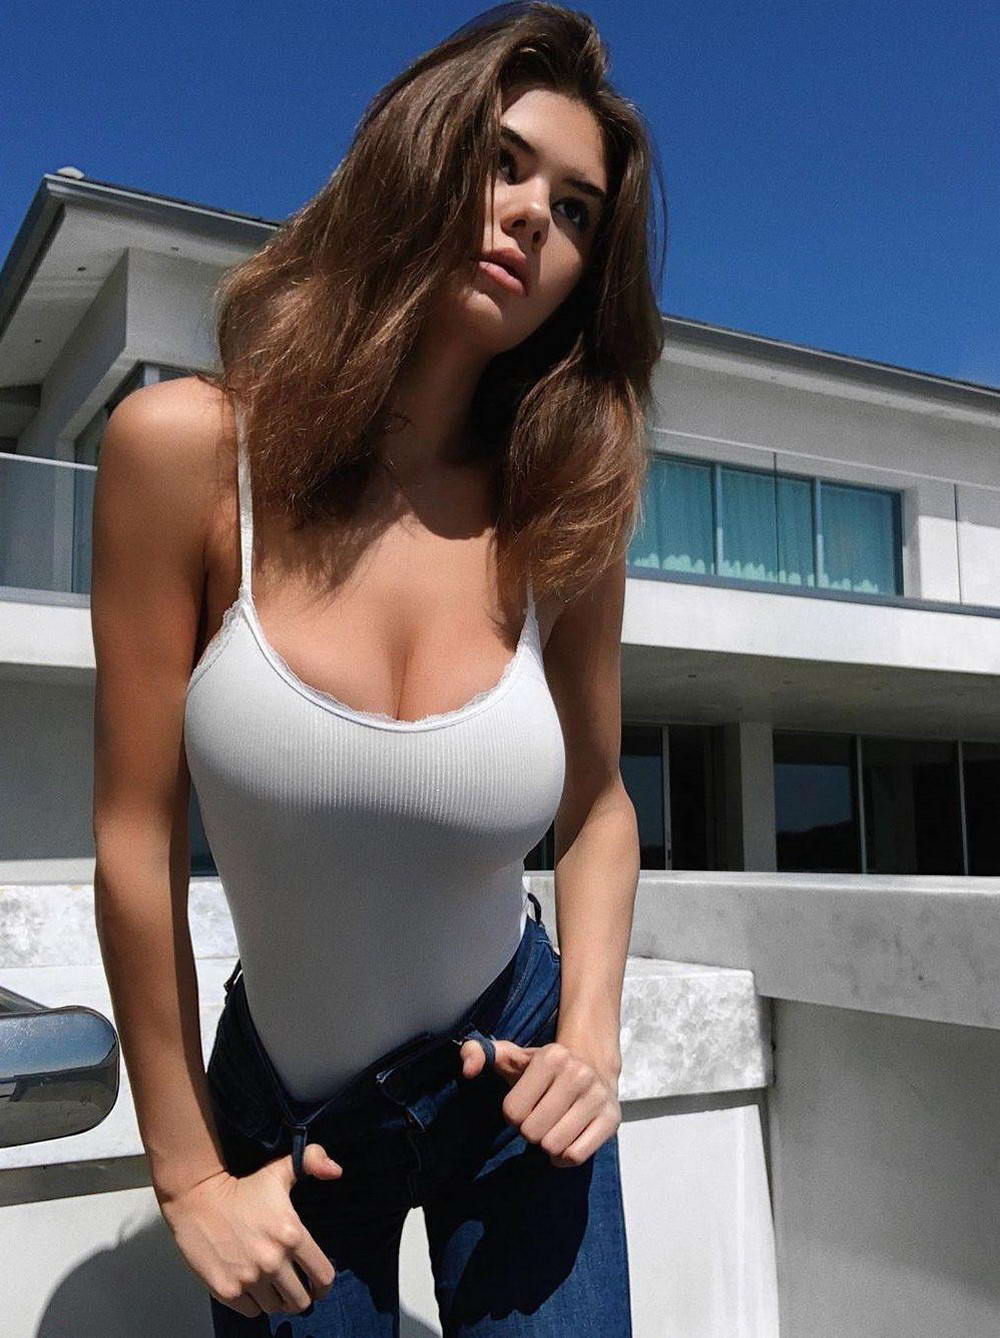 Hot Girls In White T-Shirts And Tops (35 Photos + 5 GIFs)